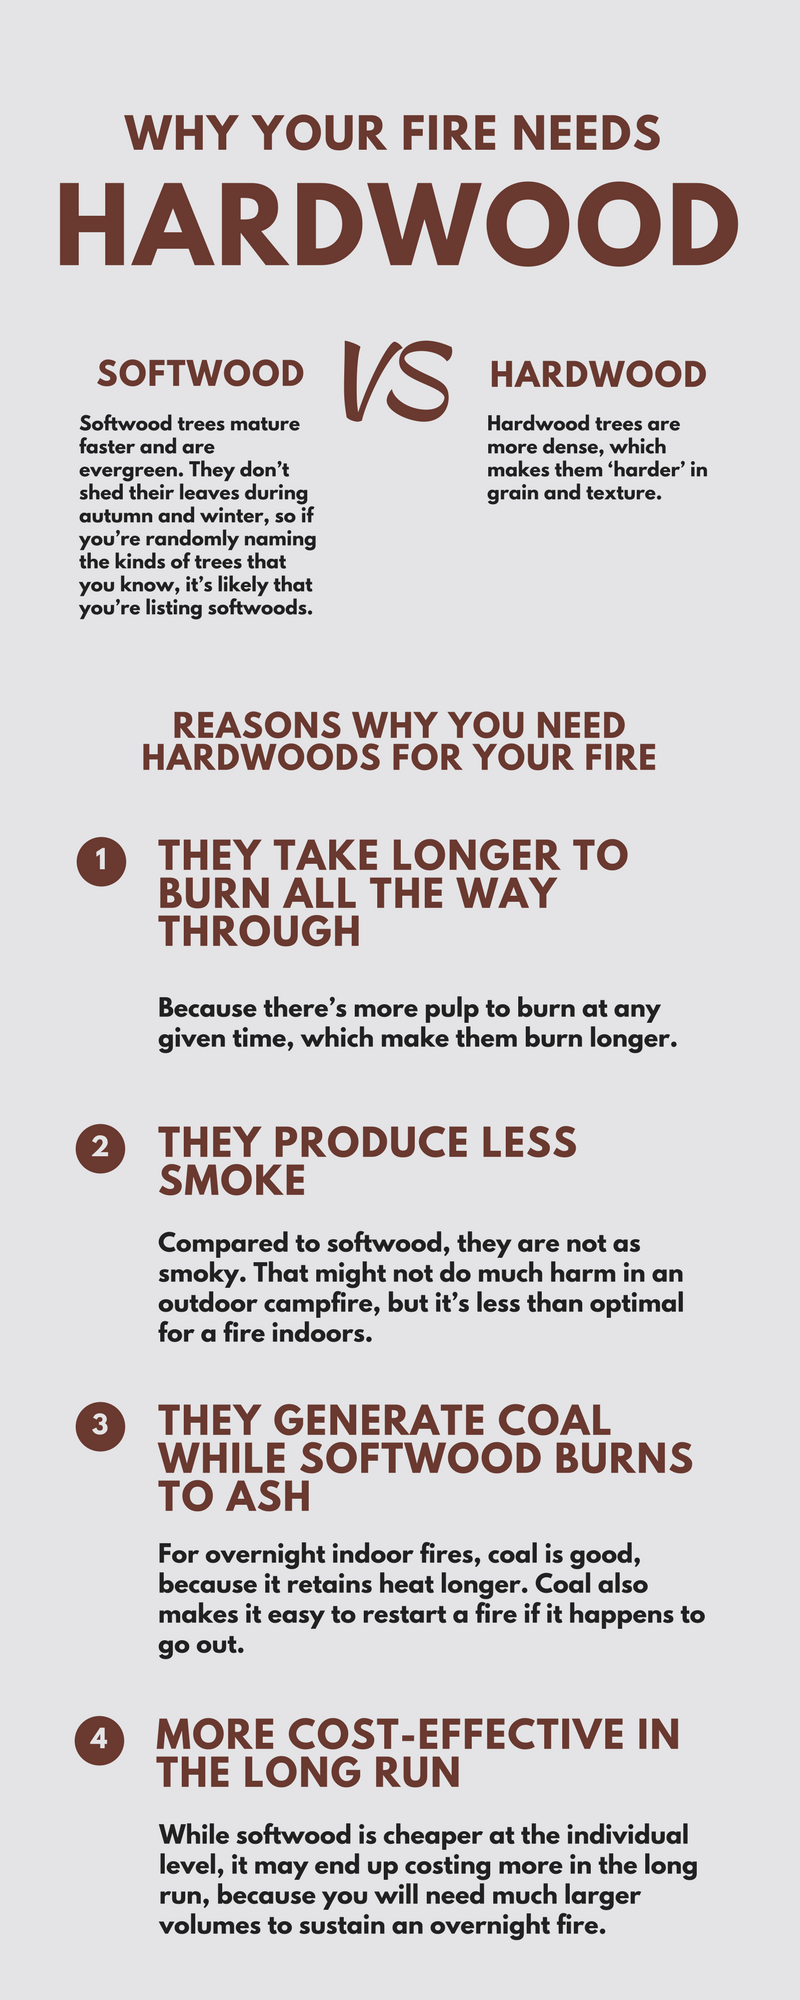 WHY YOUR FIRE NEEDS HARDWOOD